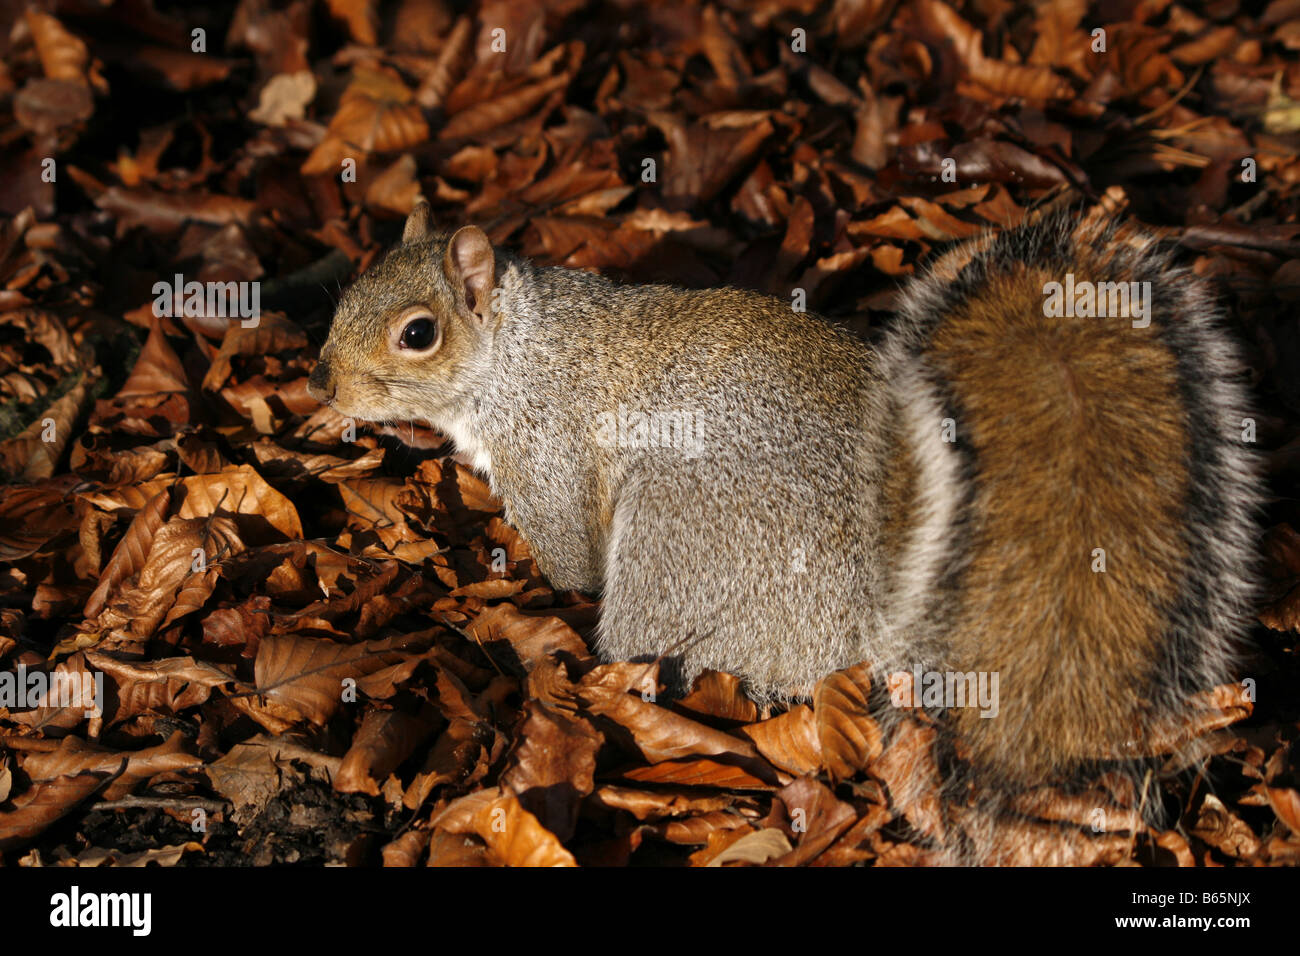 Grey squirrel (sciurus carolinensis) foraging amongst the beech leaves on the forest floor.  Taken in November. Stock Photo